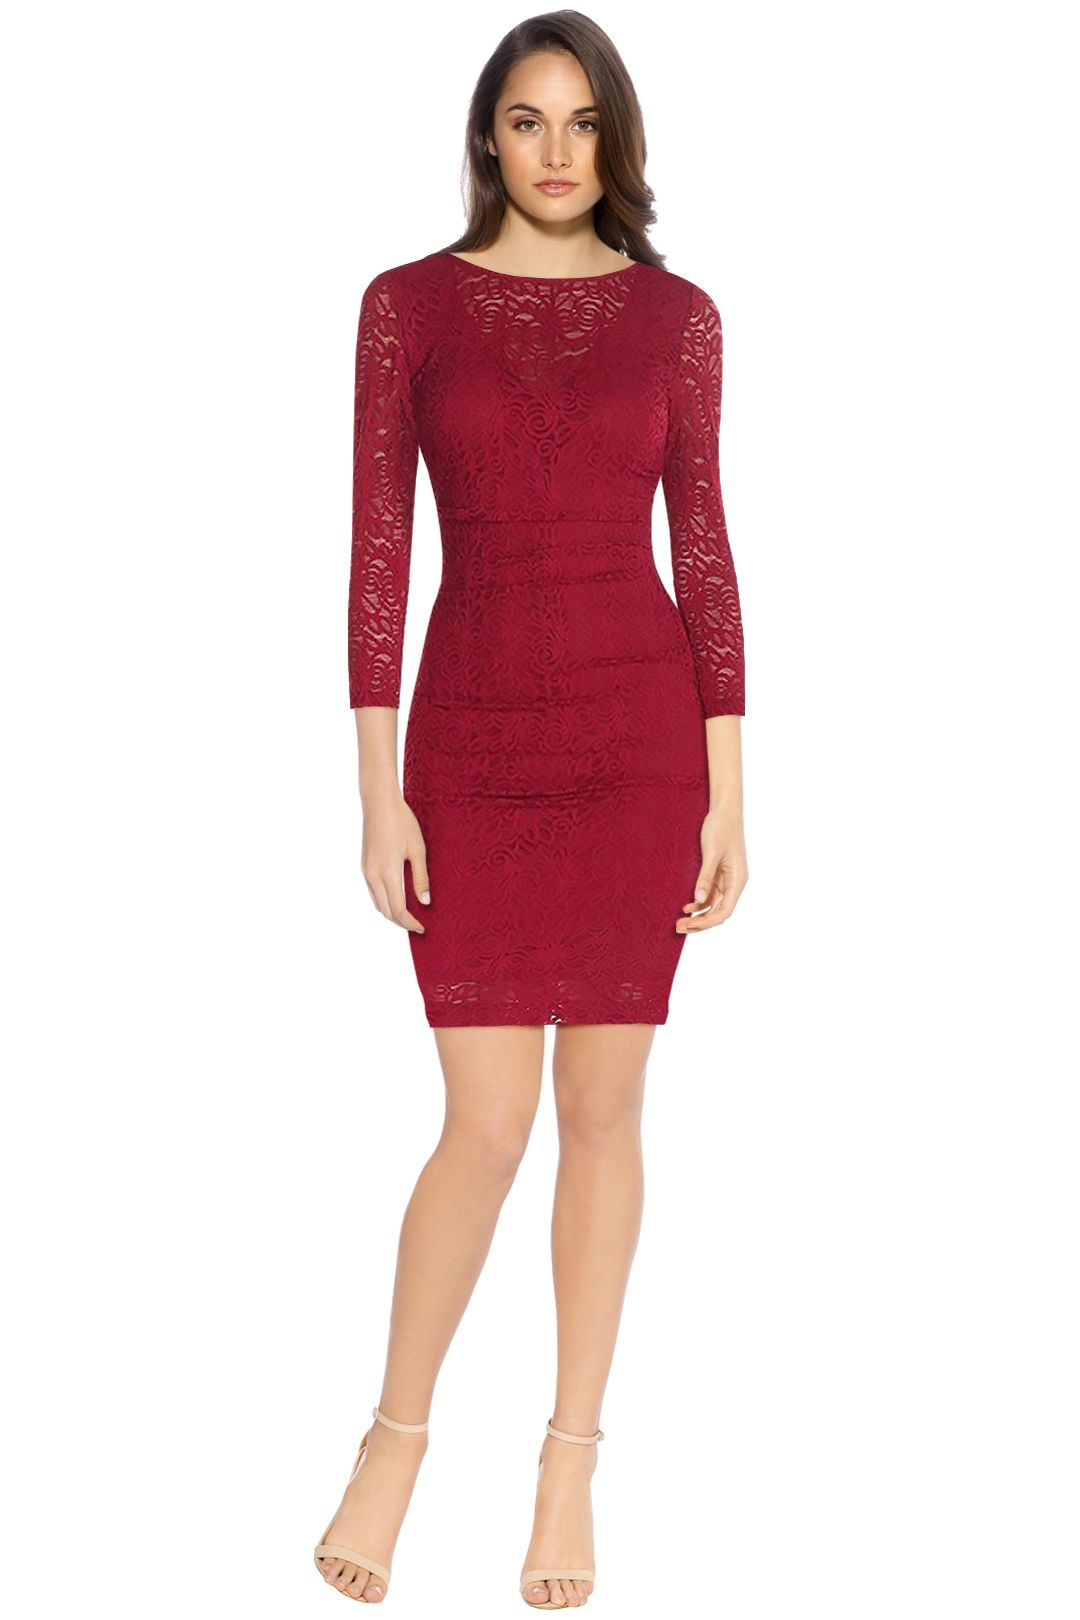 Sleeve Dress By Nicole Miller For Hire